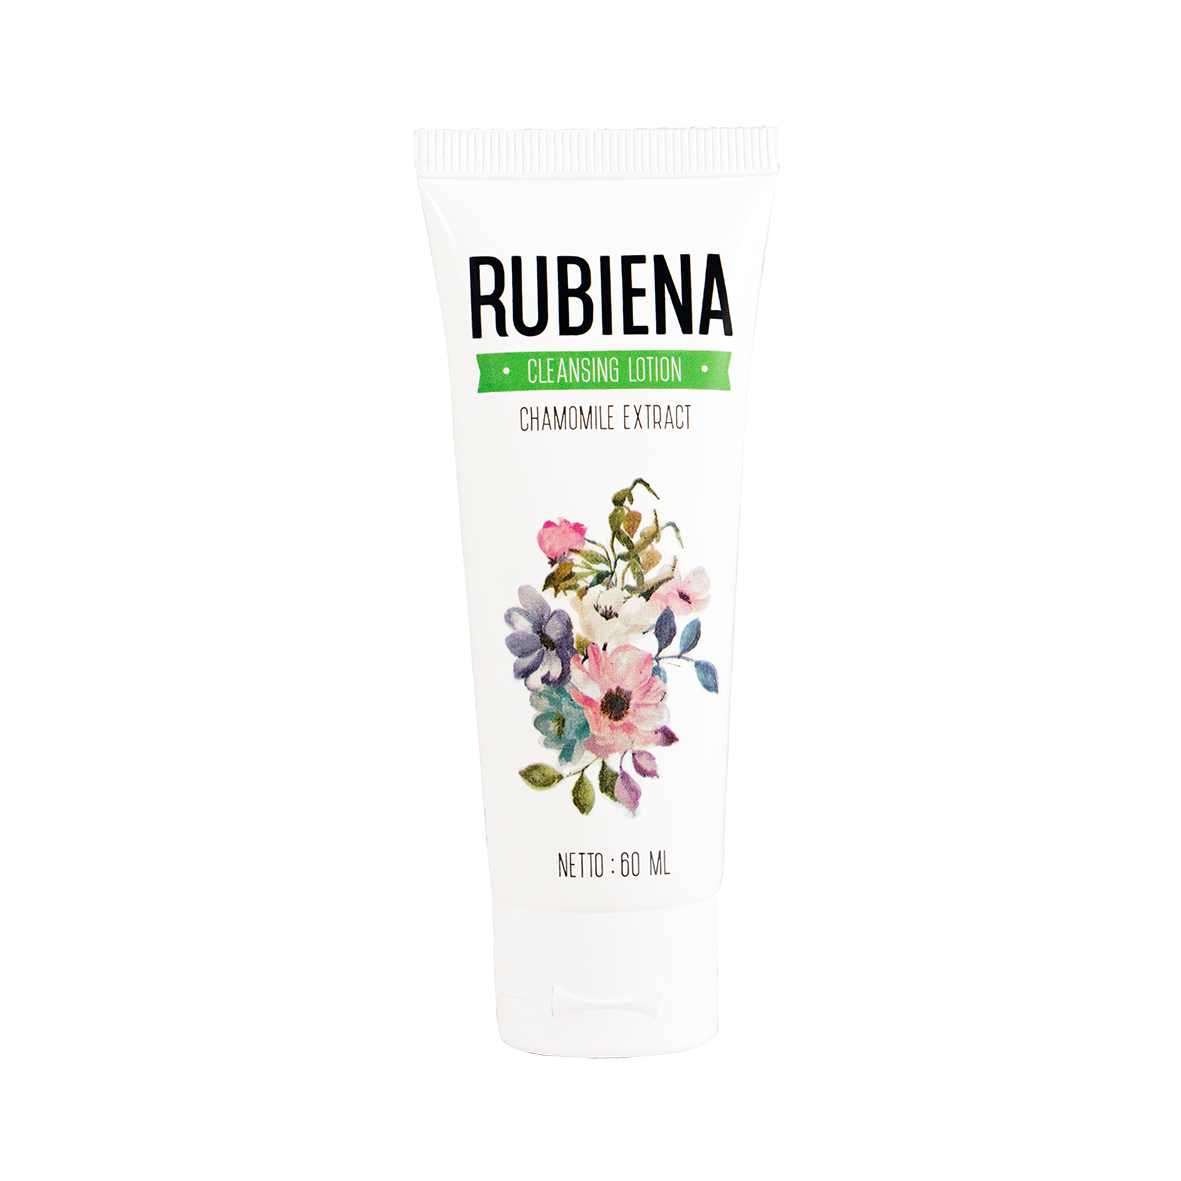 Rubiena Cleansing Lotion